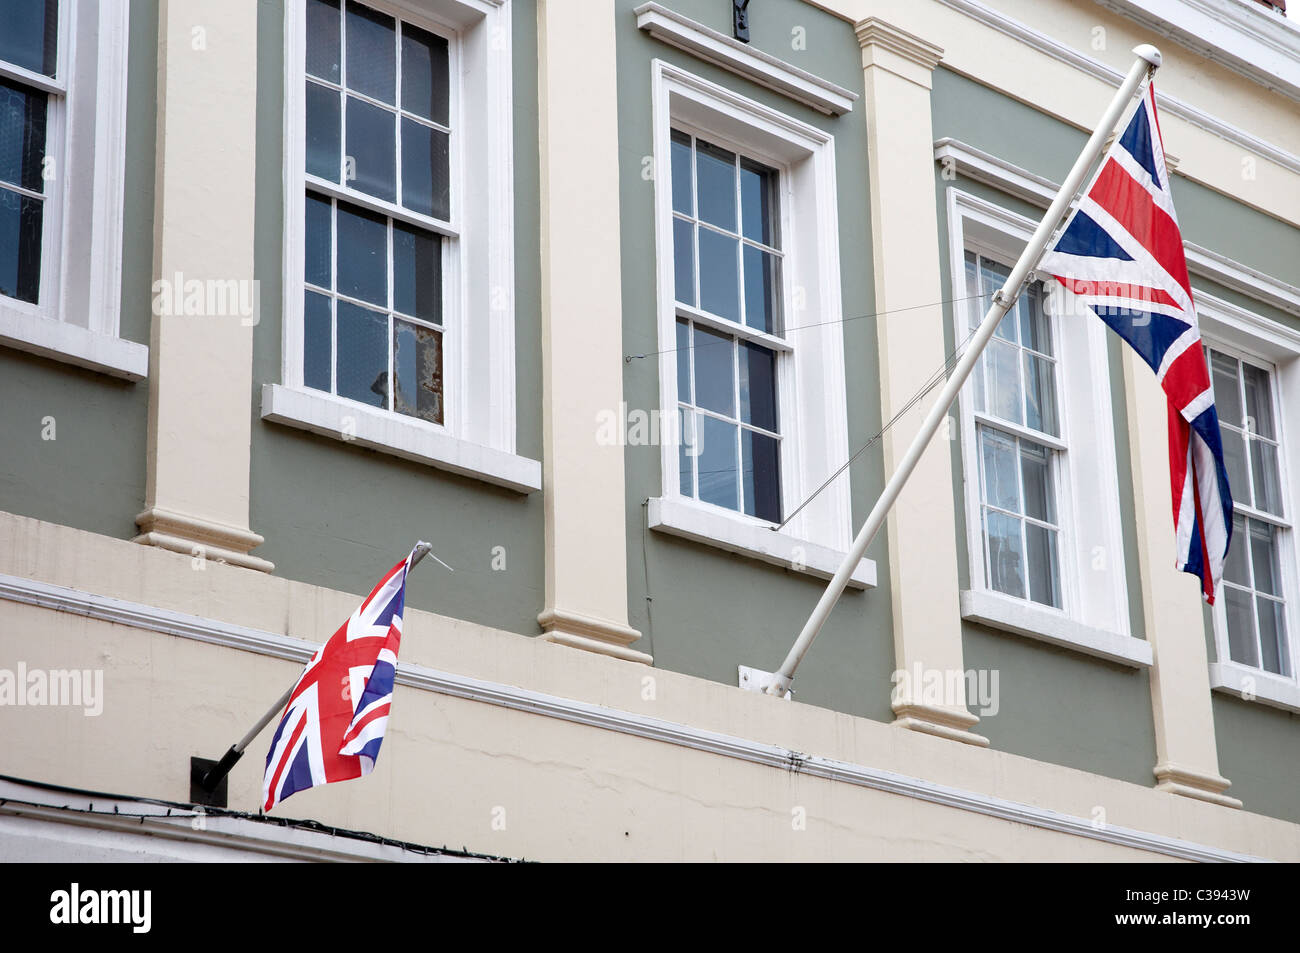 Union flags (Union jacks) flying in Upton-upon-Severn, Worcestershire, England to celebrate the royal wedding - Stock Image